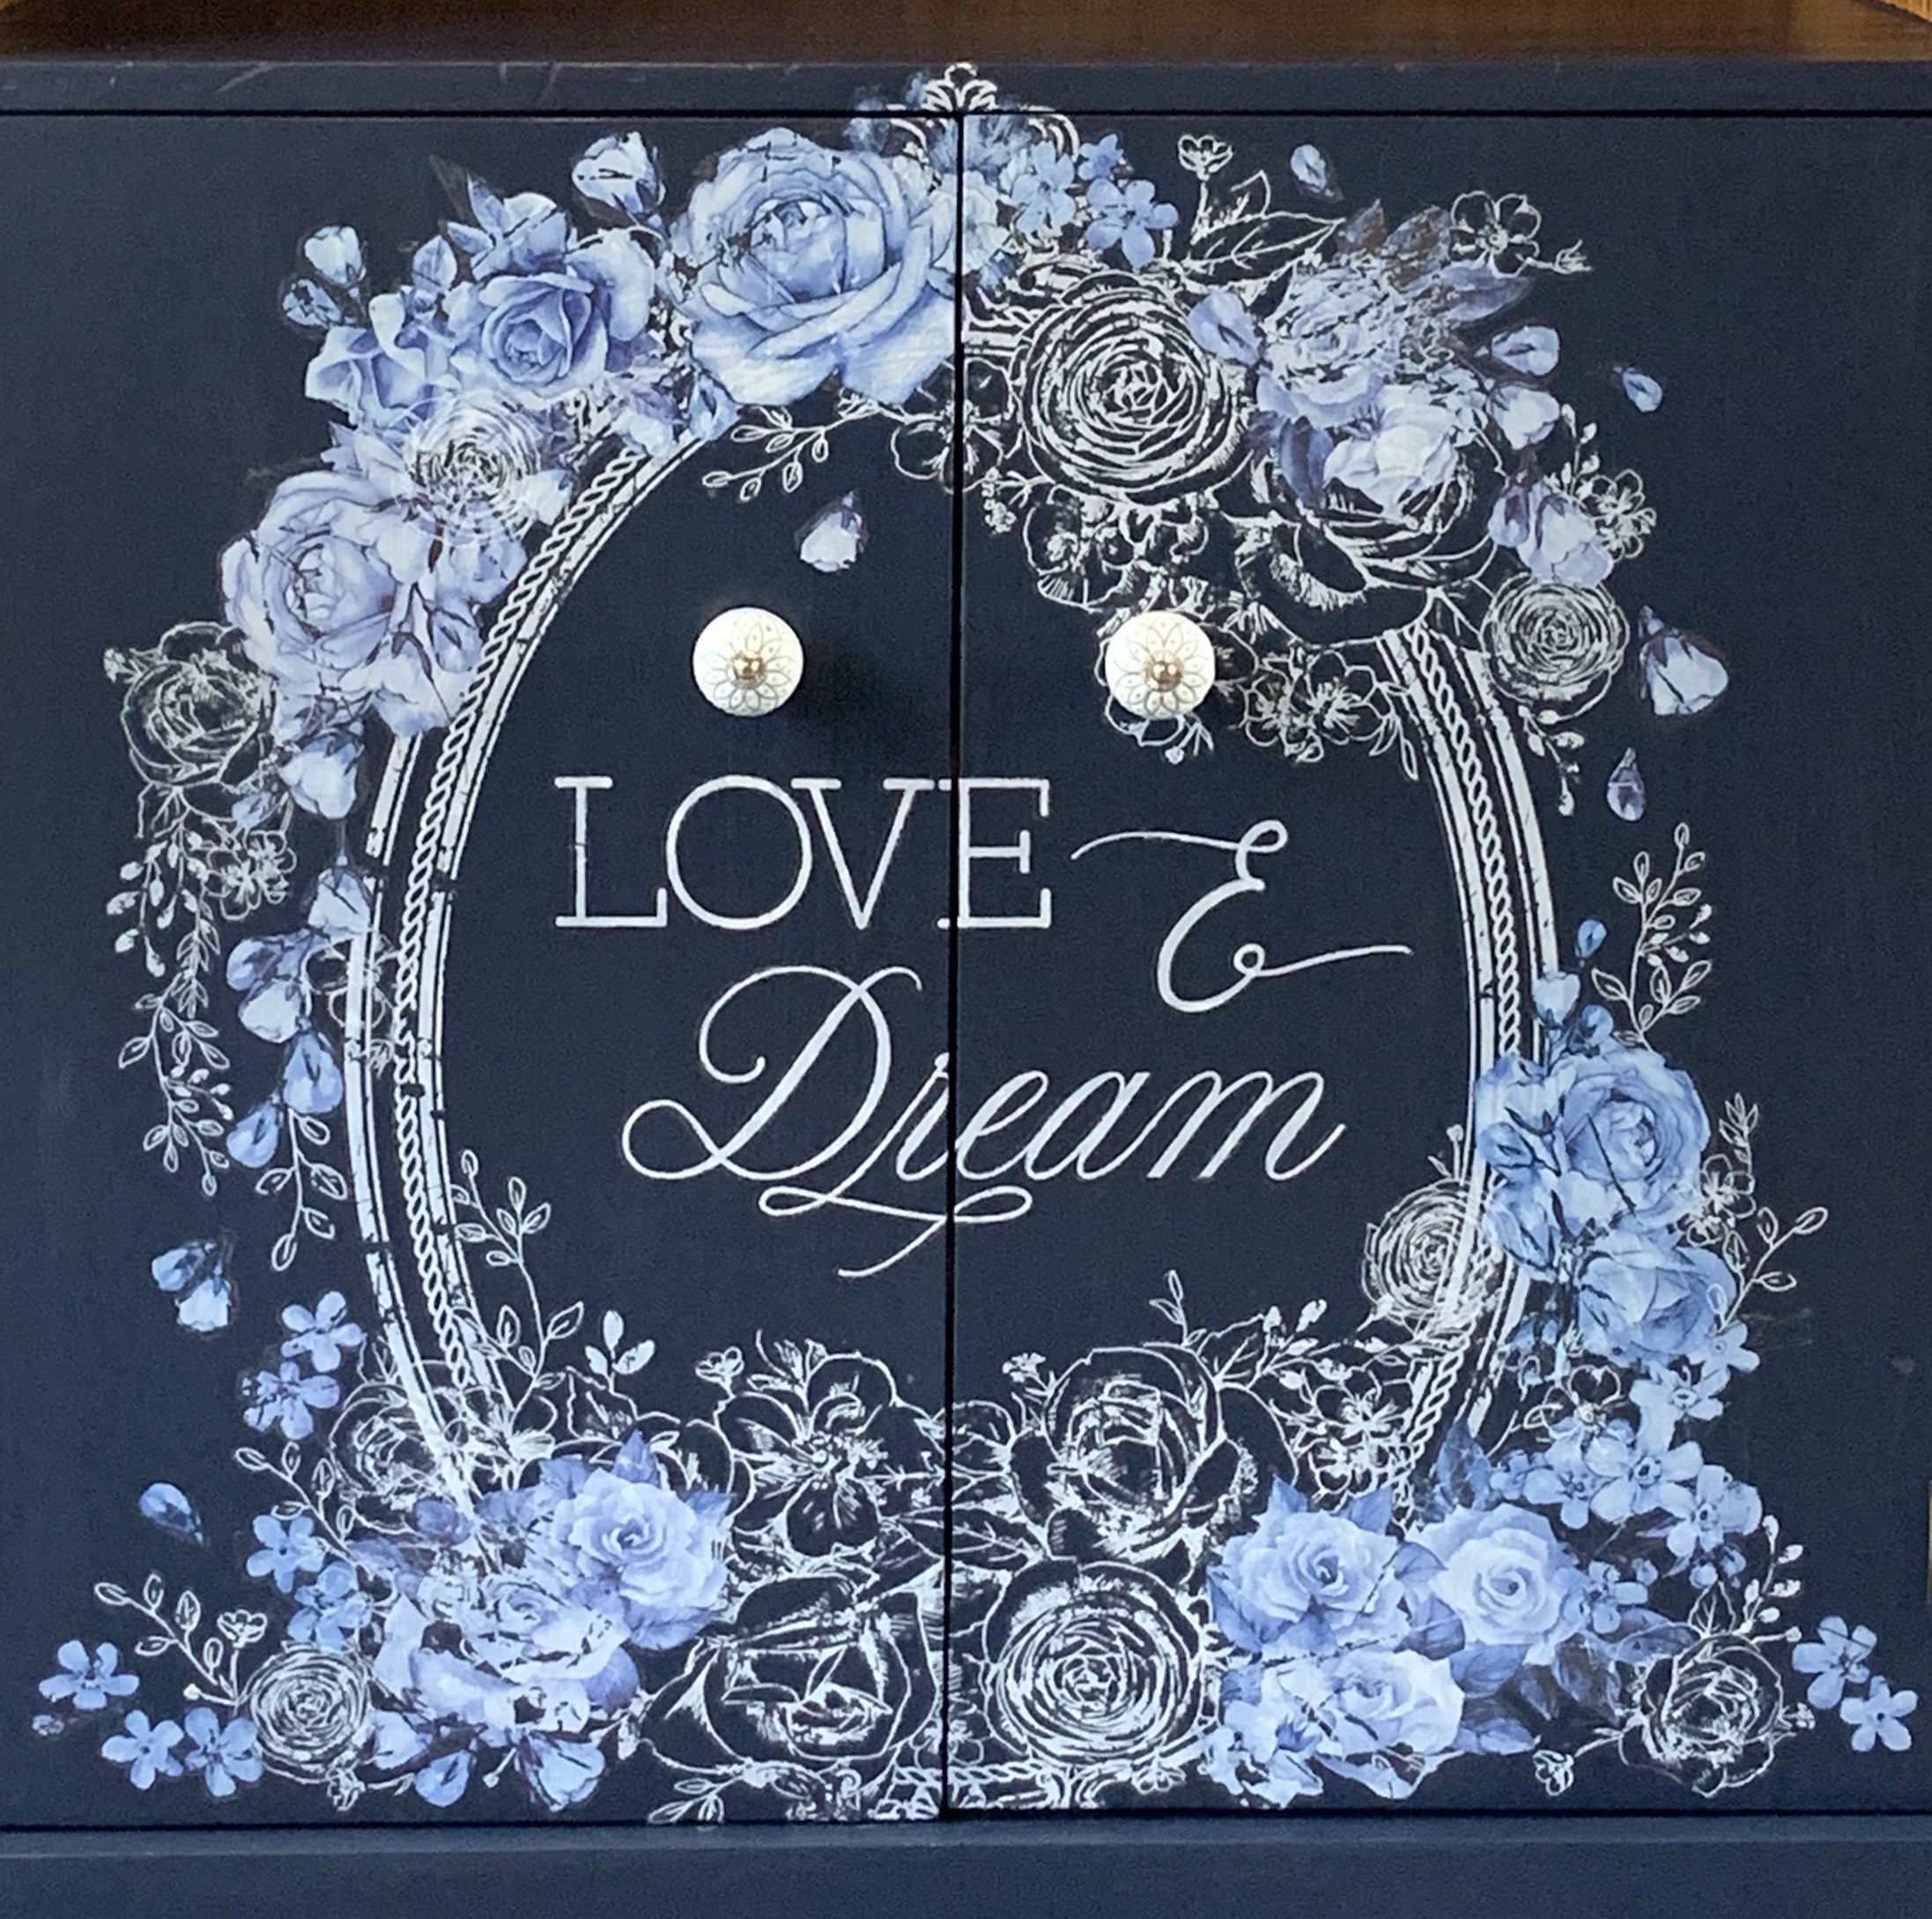 """Finished in this wonderful Navy blue, floral transfers in gorgeous whites and blue all compliment the natural wood…""  The Love and Dream Decor Transfer™(637033) is white and measures 22 x 28 inches, so it shows up especially well on dark backgrounds ."